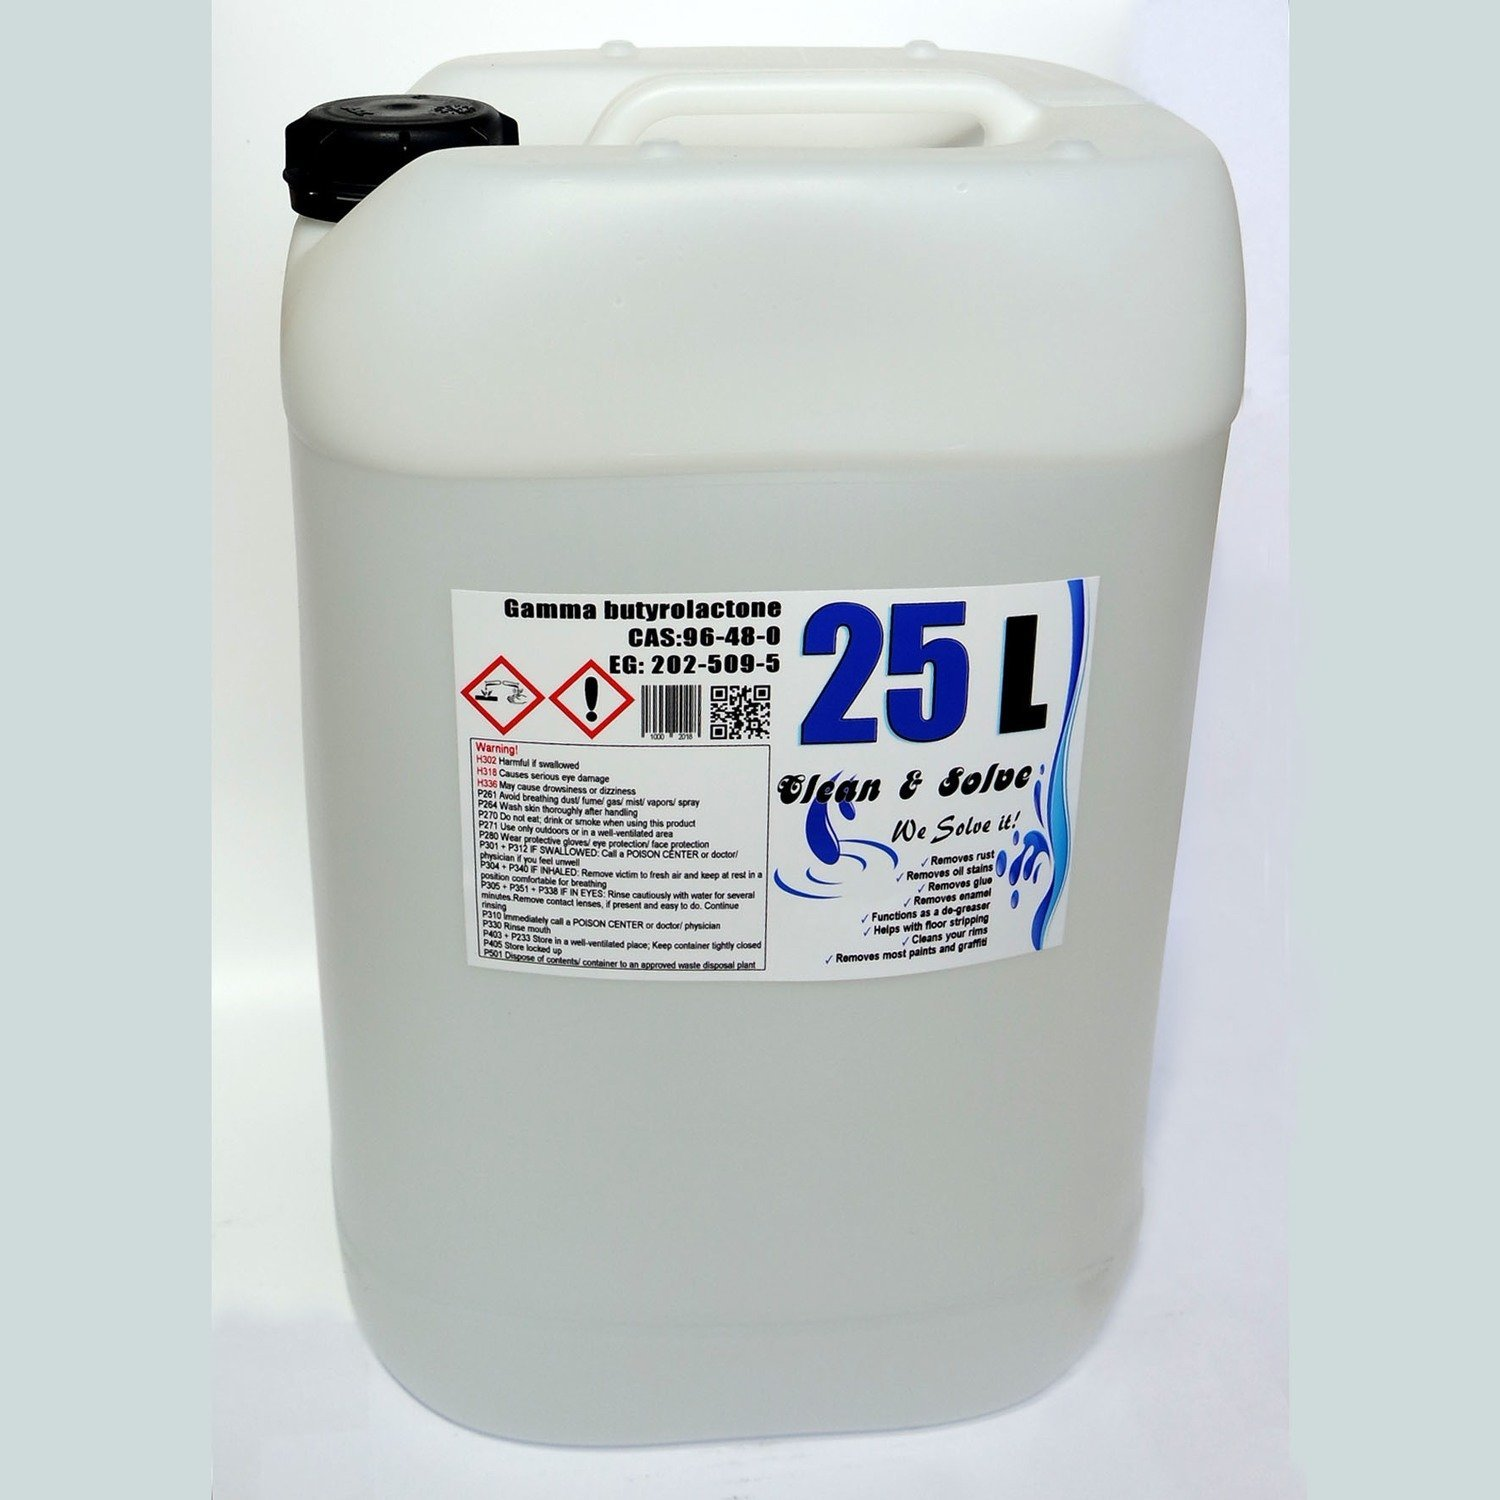 Multi Remover 25.000 ml Technical Grade Canister 00025 HS Code 29322020